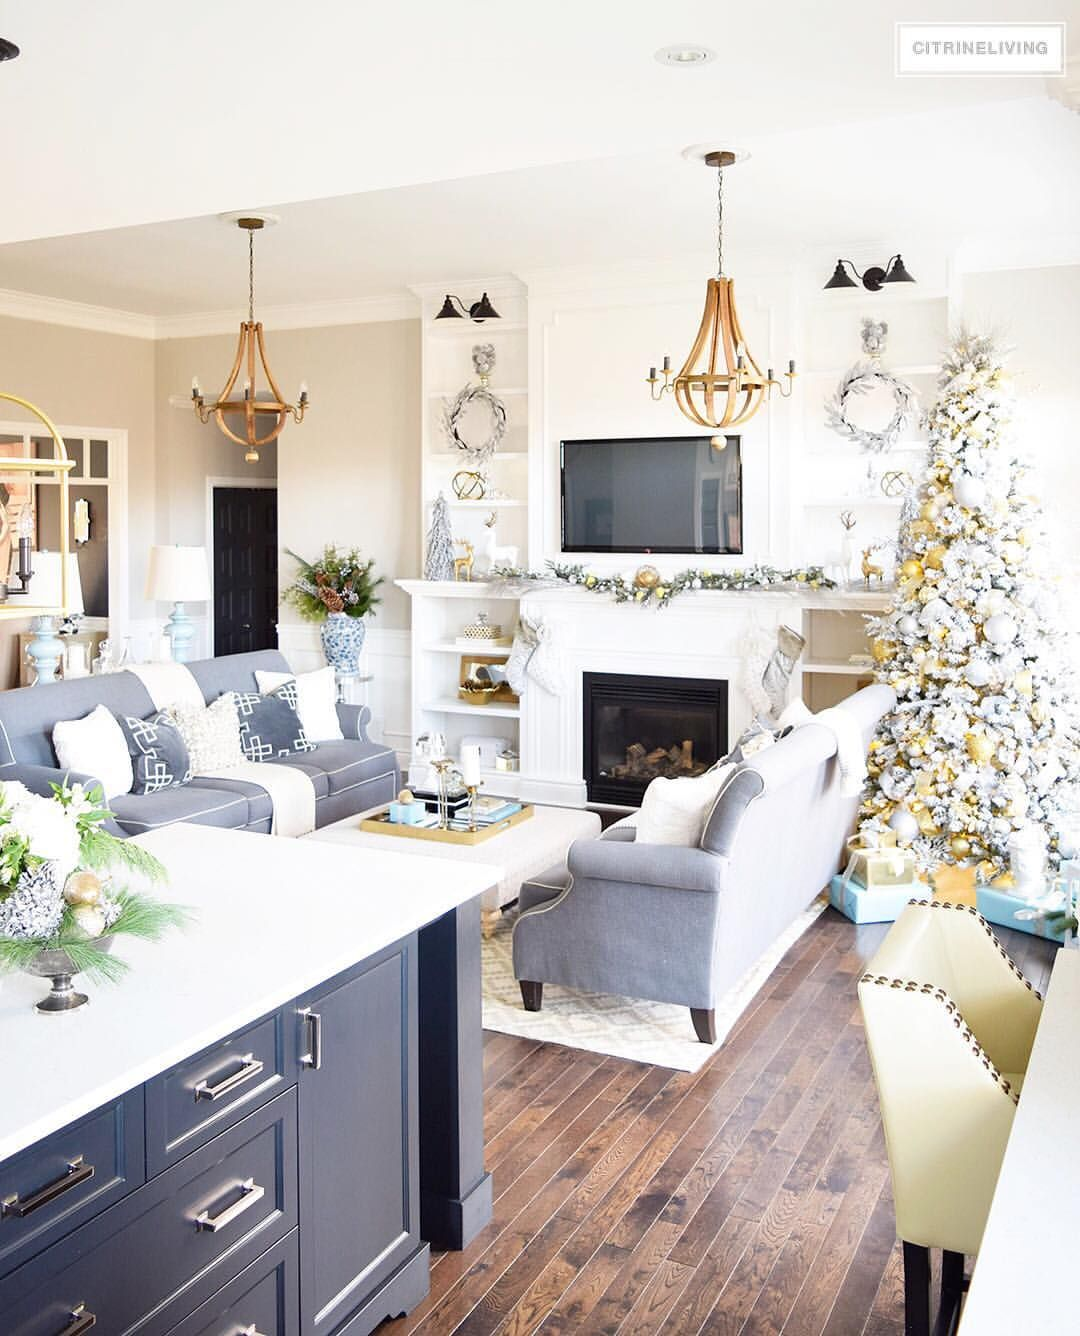 Kitchen Hearth Room Designs: Sharing A Shot From My Recent Christmas Home Tour...we